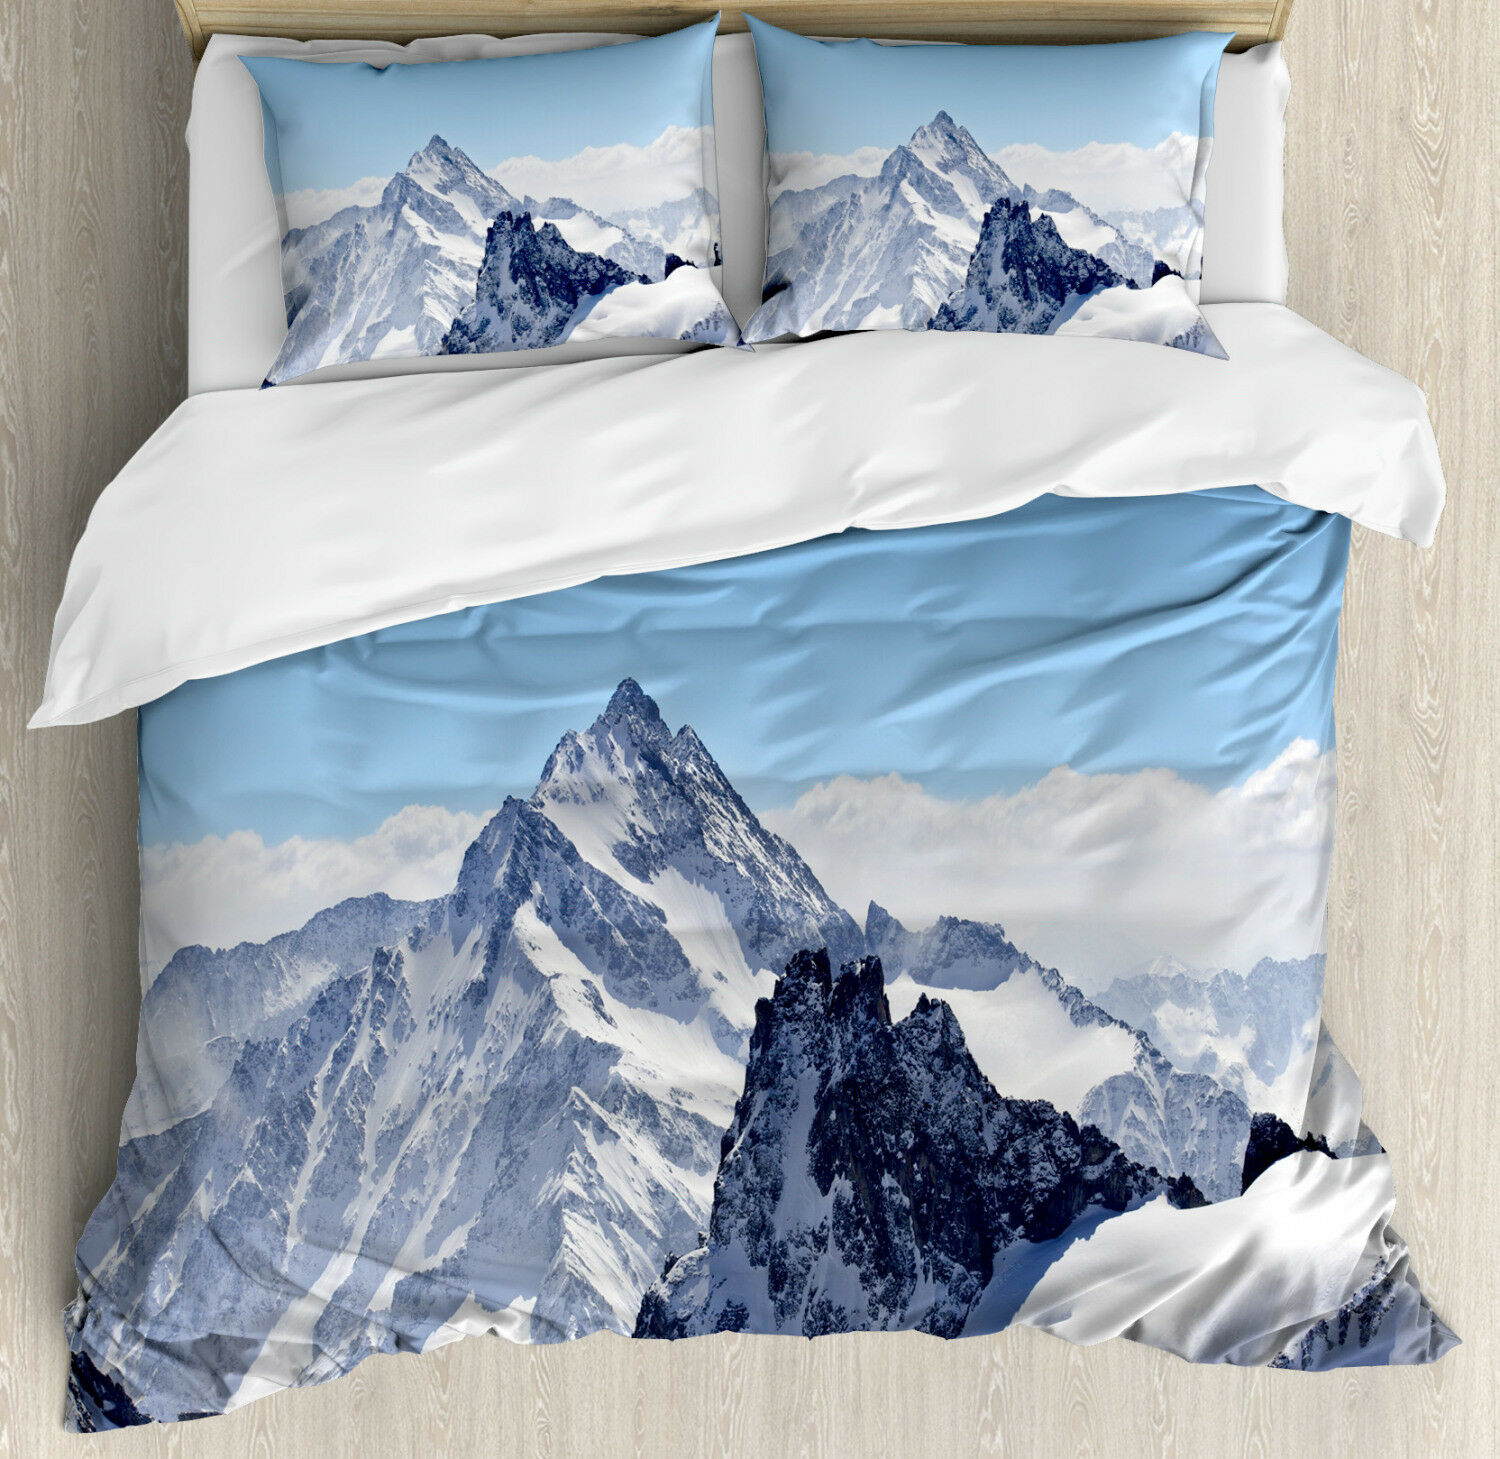 Winter Duvet Cover Set with Pillow Shams Snowy Mountain Peaks Print